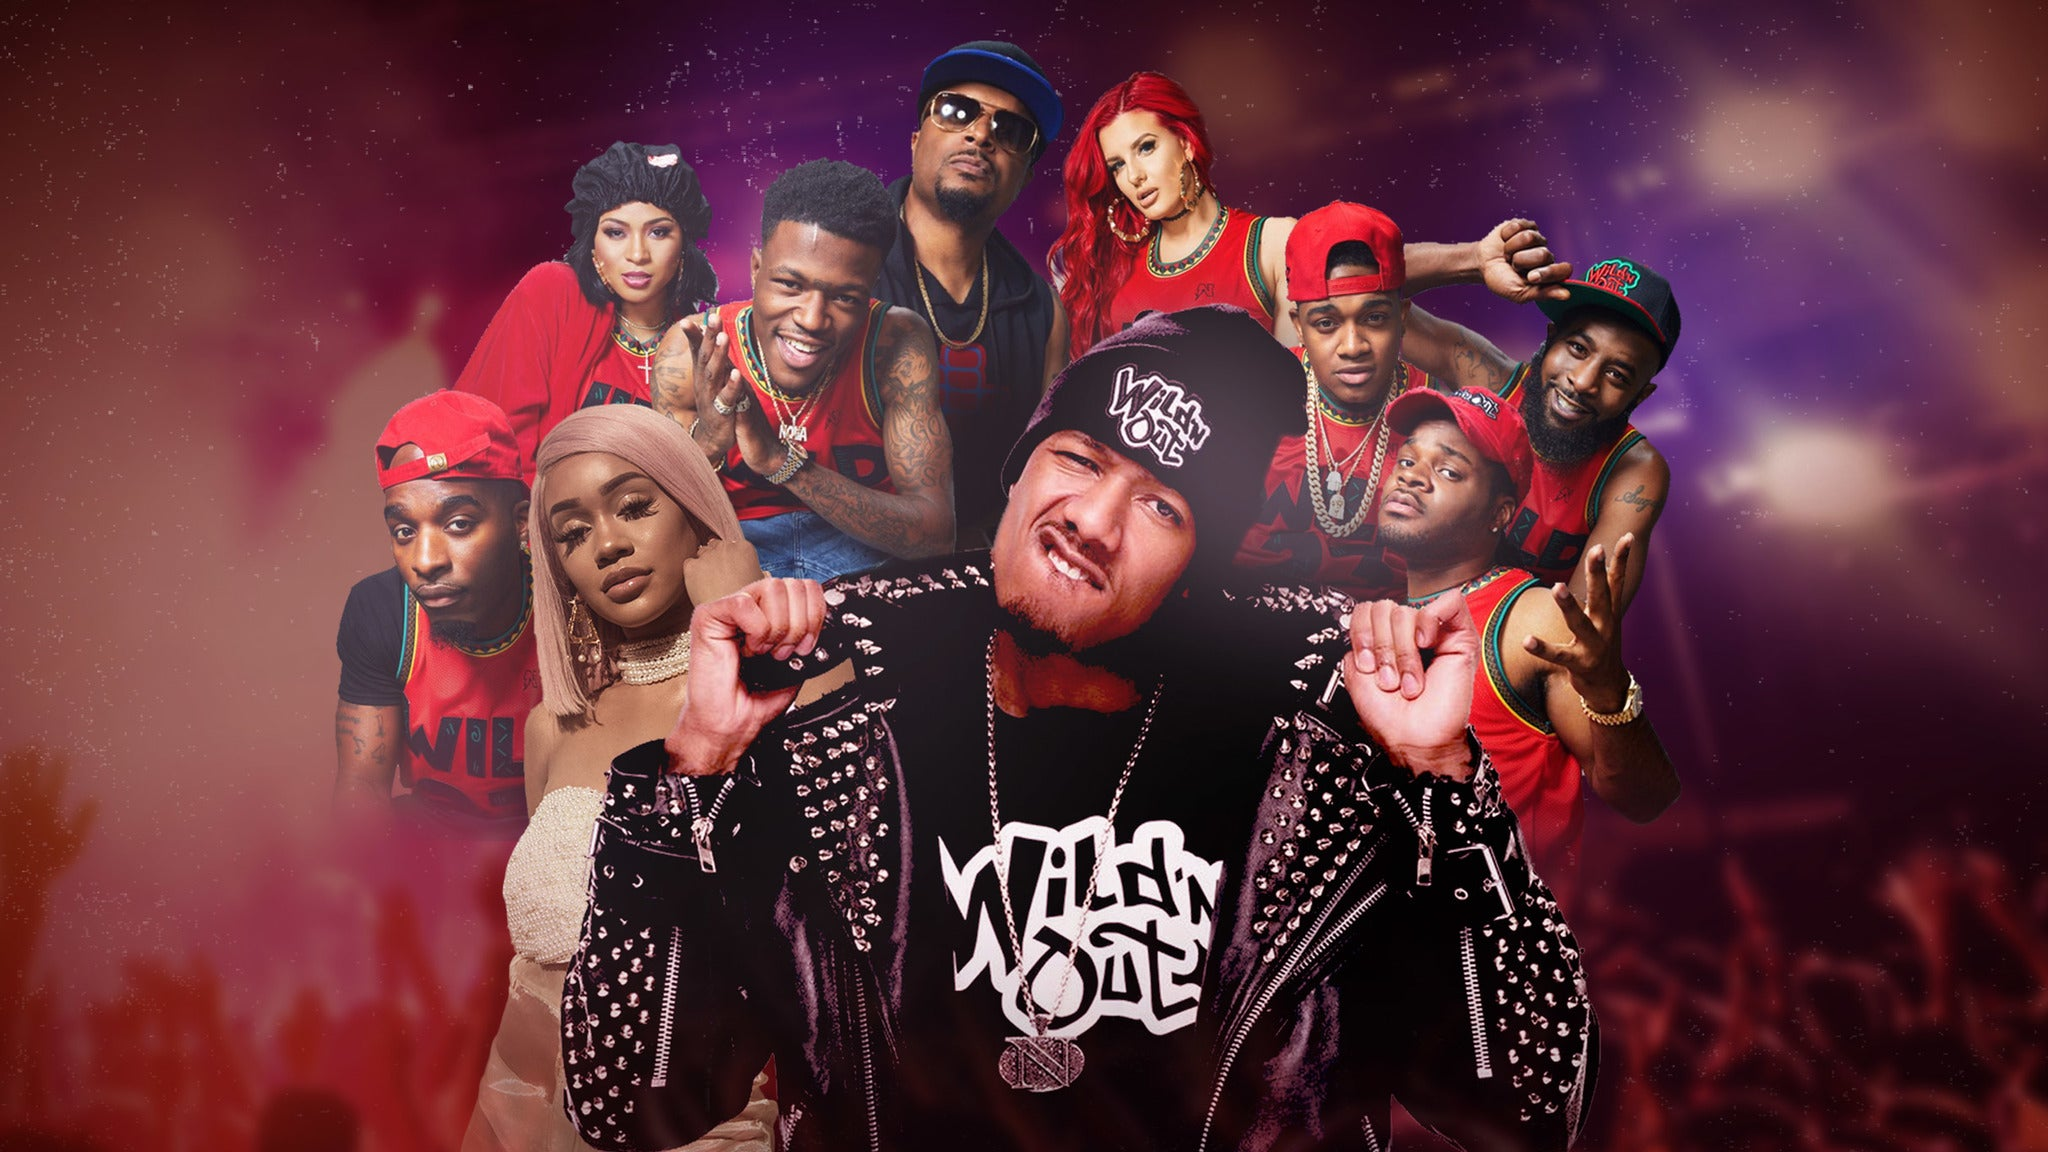 Nick Cannon Presents: MTV Wild 'N Out Live - Atlanta, GA 30303